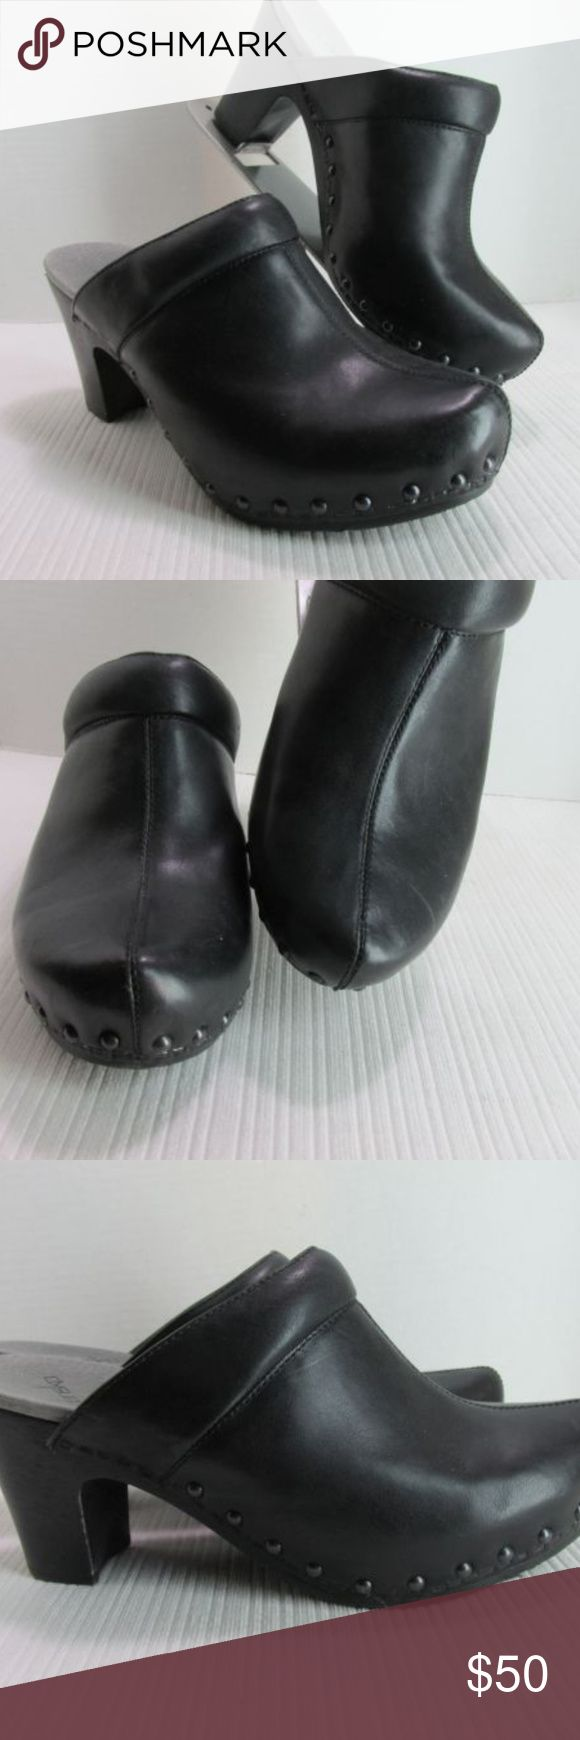 """Kork's Kork Ease Black Studded Clogs Shoes US 8 Kork's by Kork Ease. Black leather uppers with strap/buckle trim, studded around sole. Platform with heel clogs.  Size/Measurements:  Marked/tagged size  US 8 EU 39      Length (insole tip of toe to back edge of heel cup) 10""""     Width (outersole at widest/ball) 3.5""""     Platform 1""""     Heel height 3.5""""  Condition:  Excellent previously owned. Kork's Shoes Mules & Clogs"""